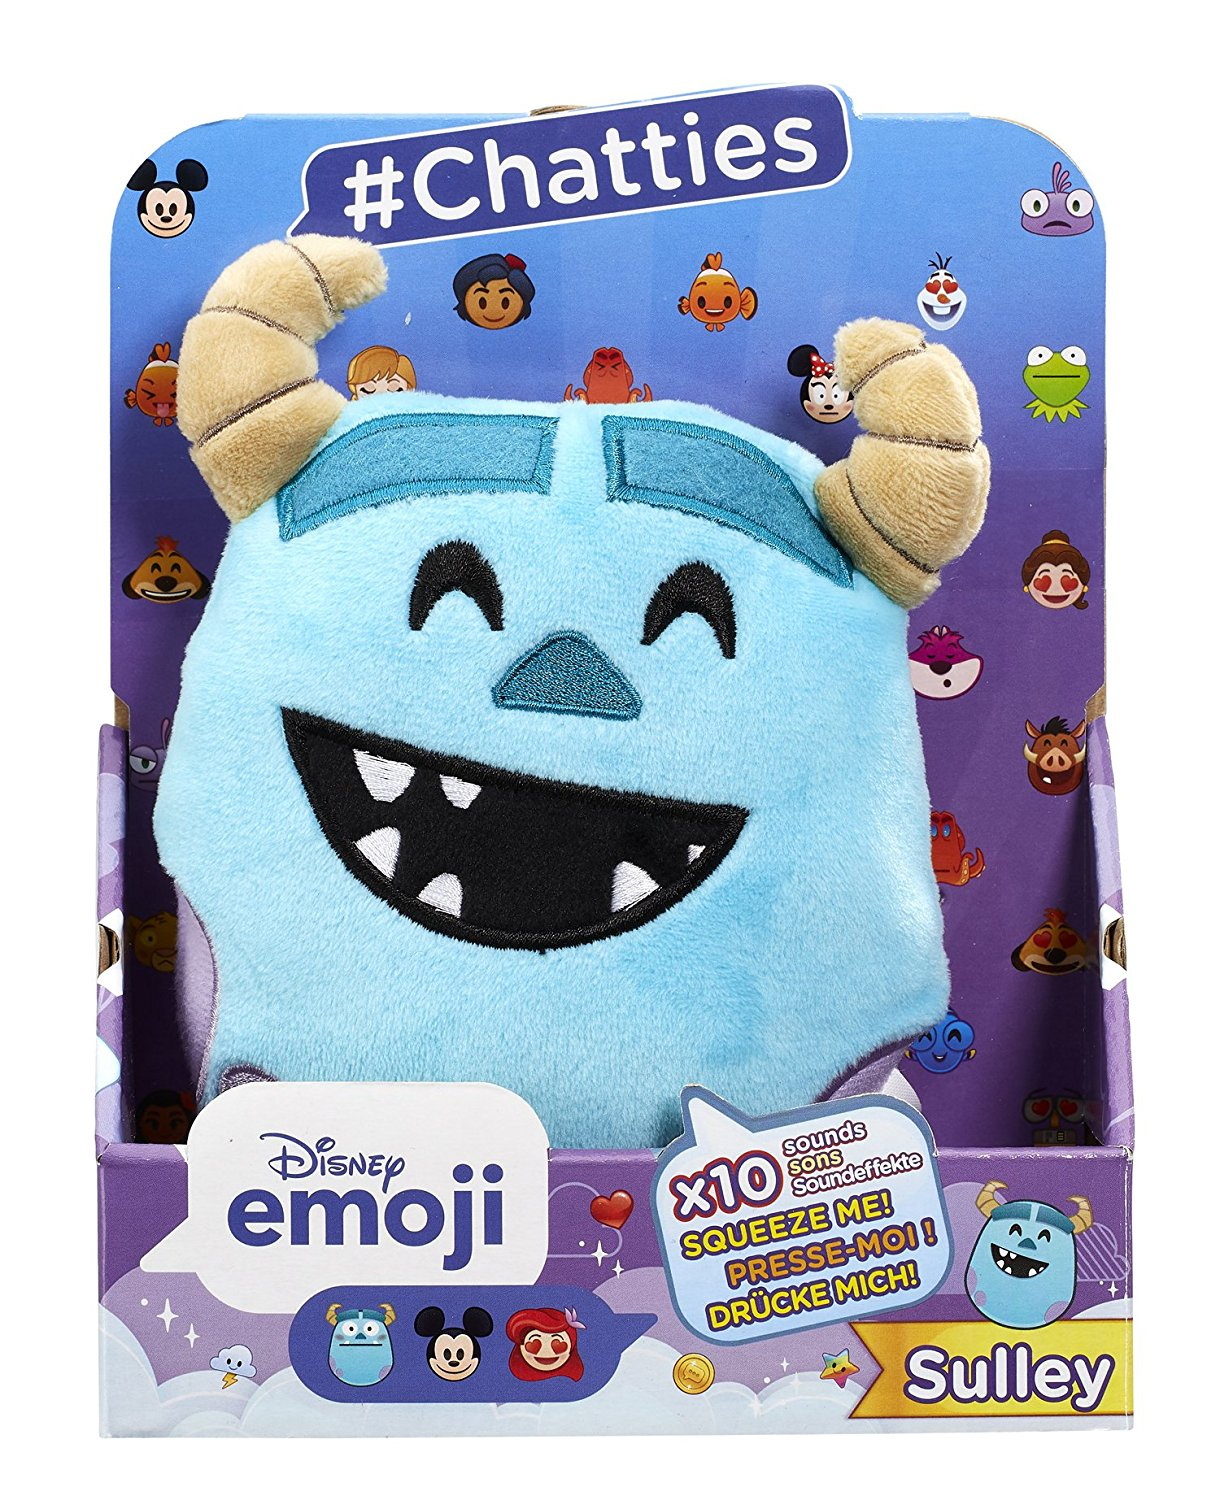 Disney Emoji #Chatties Monsters Inc Sulley Plush Sound Effects